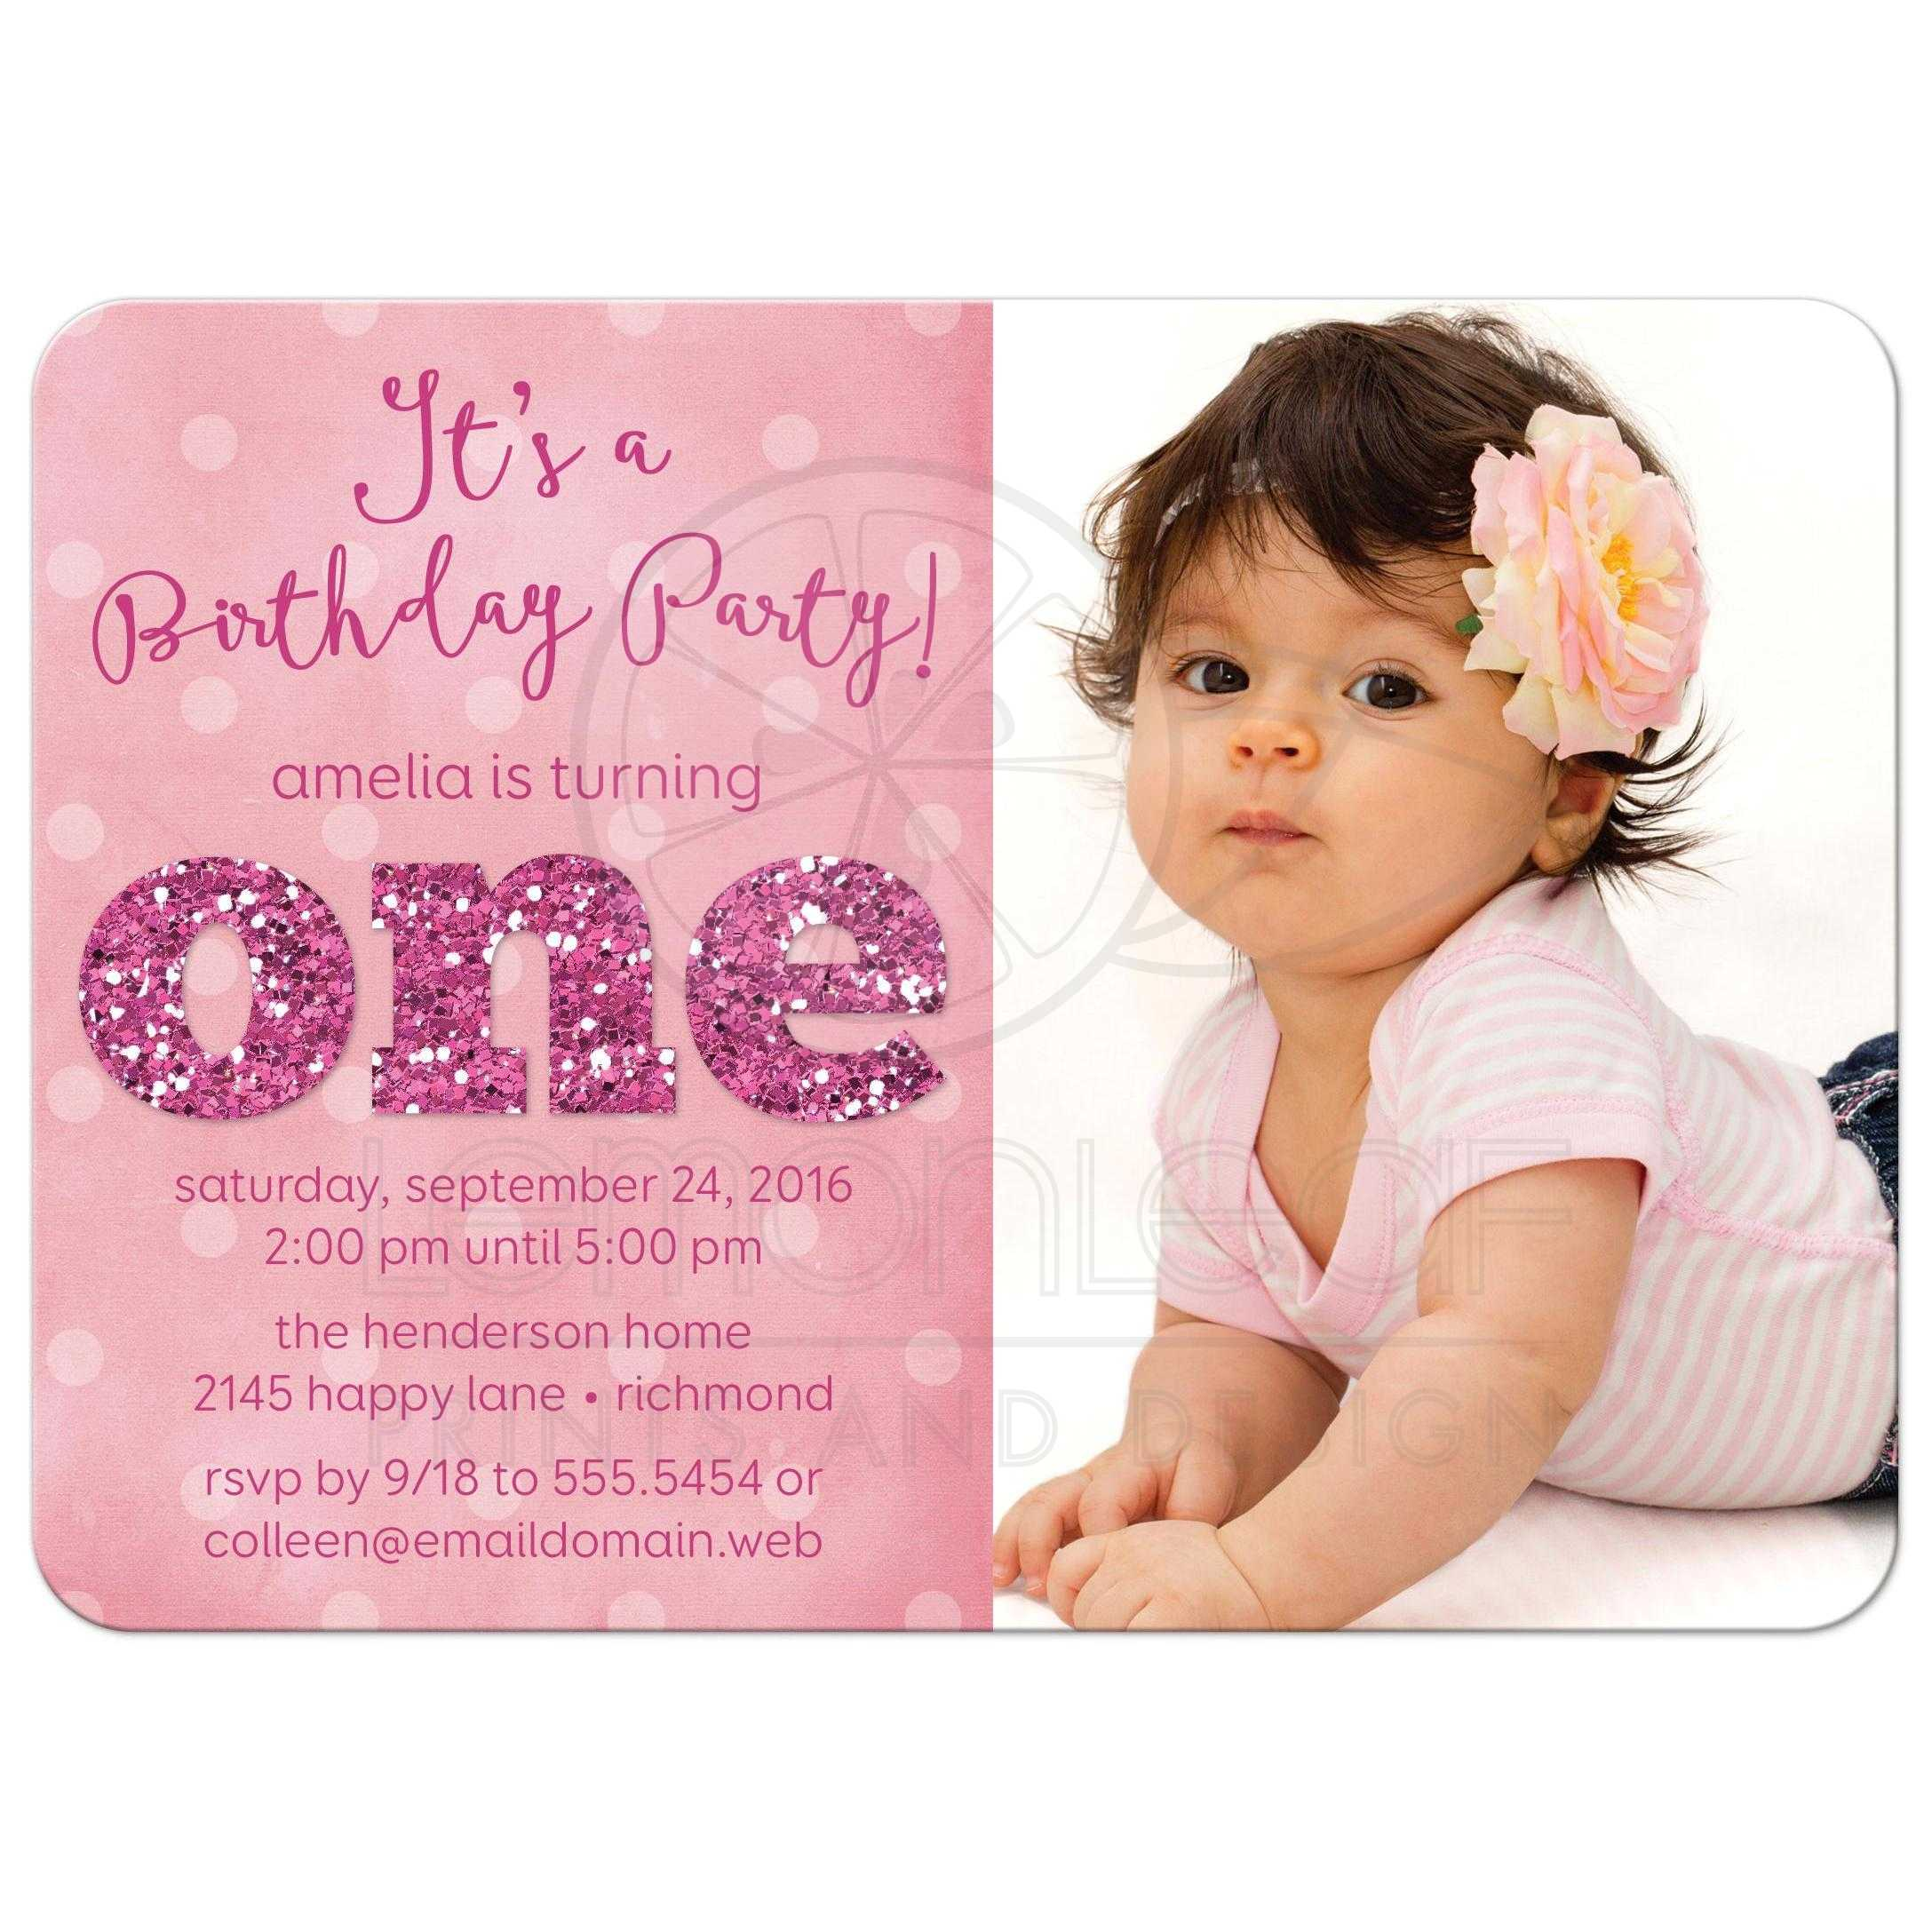 Year Old Birthday Invitations Marvelous 1 Year Old Birthday Party